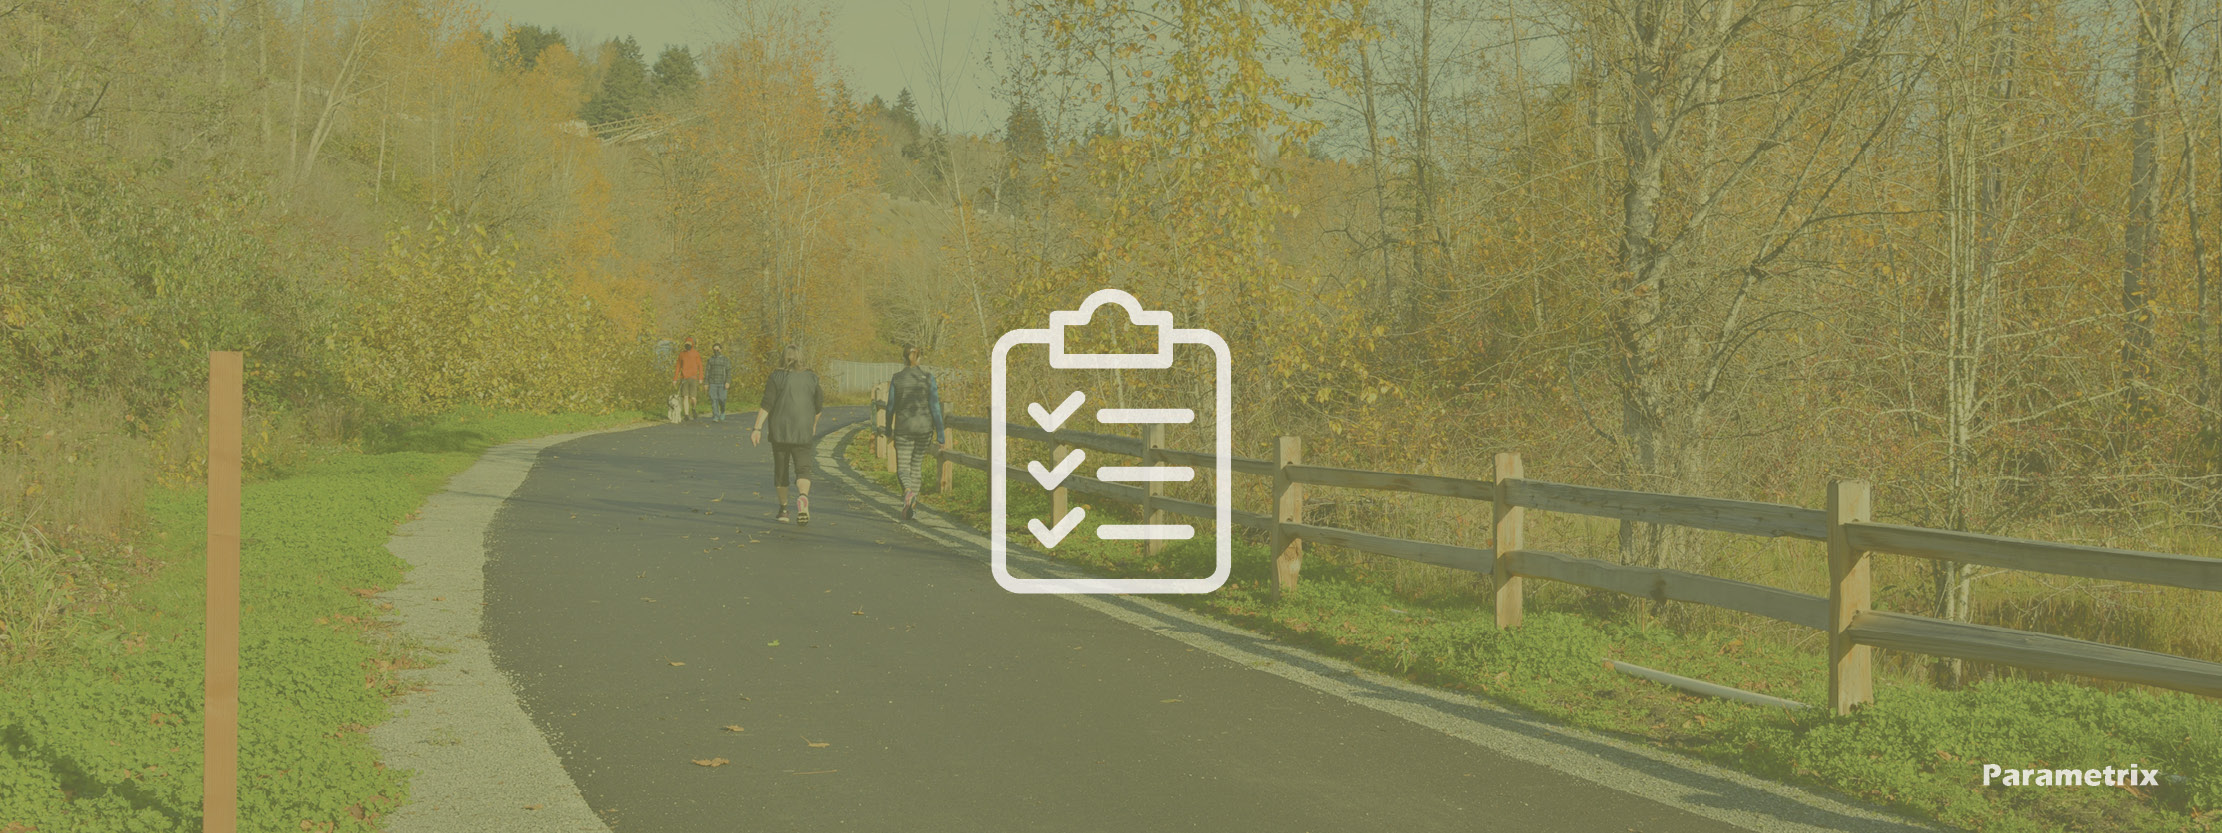 A trail with people walking overlayed by a checklist icon